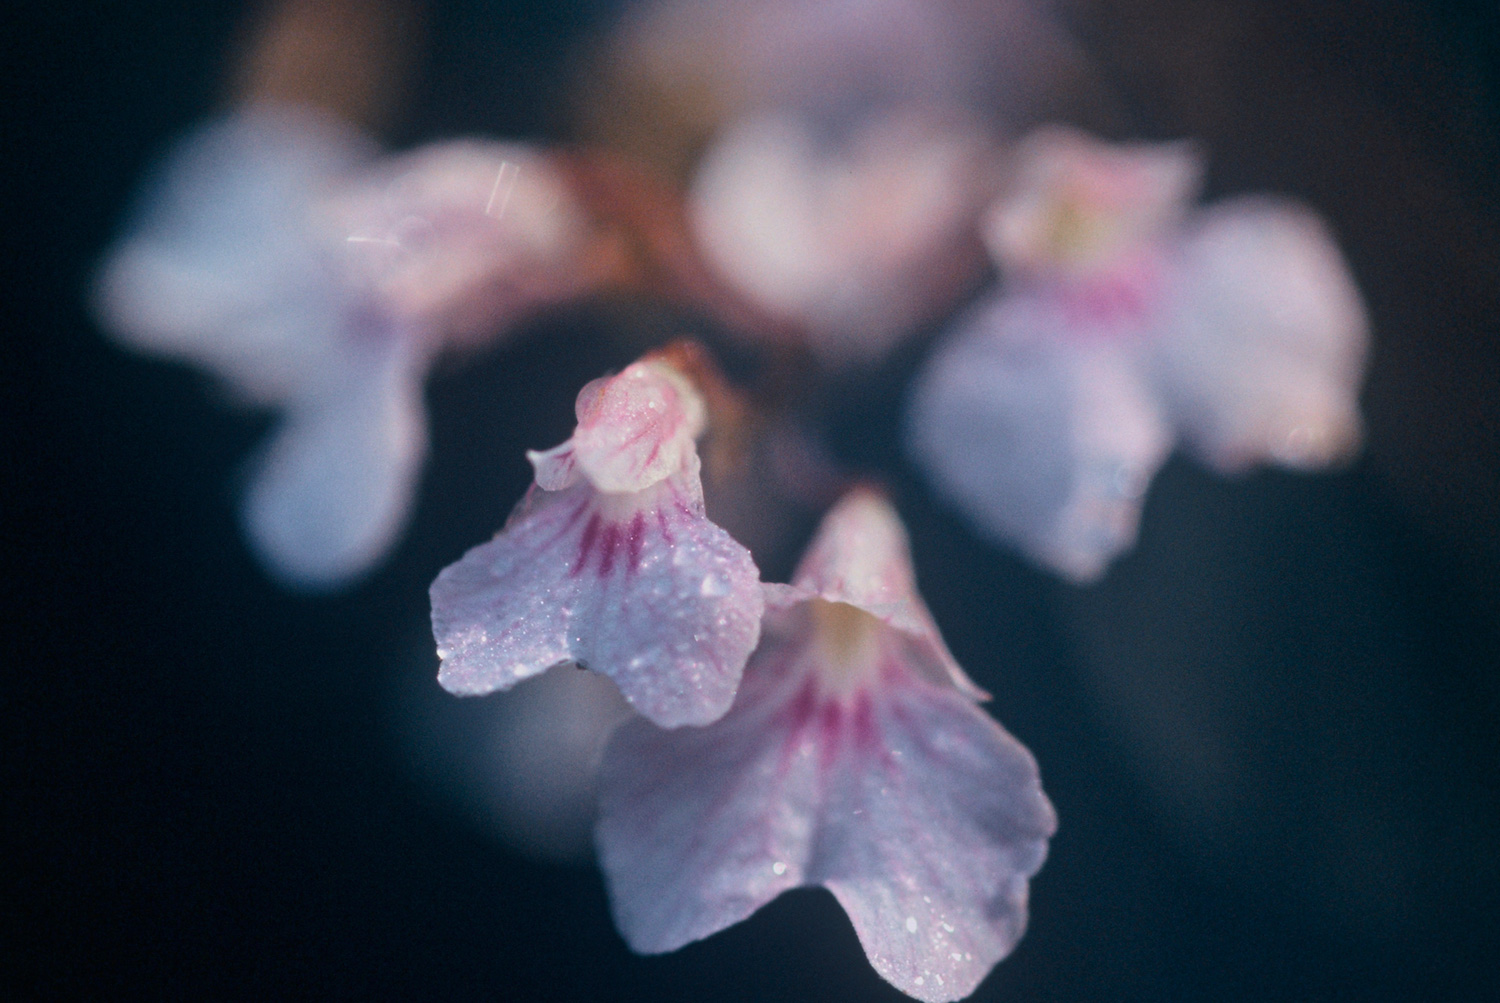 Enter the Orchids & Flowers Image Gallery